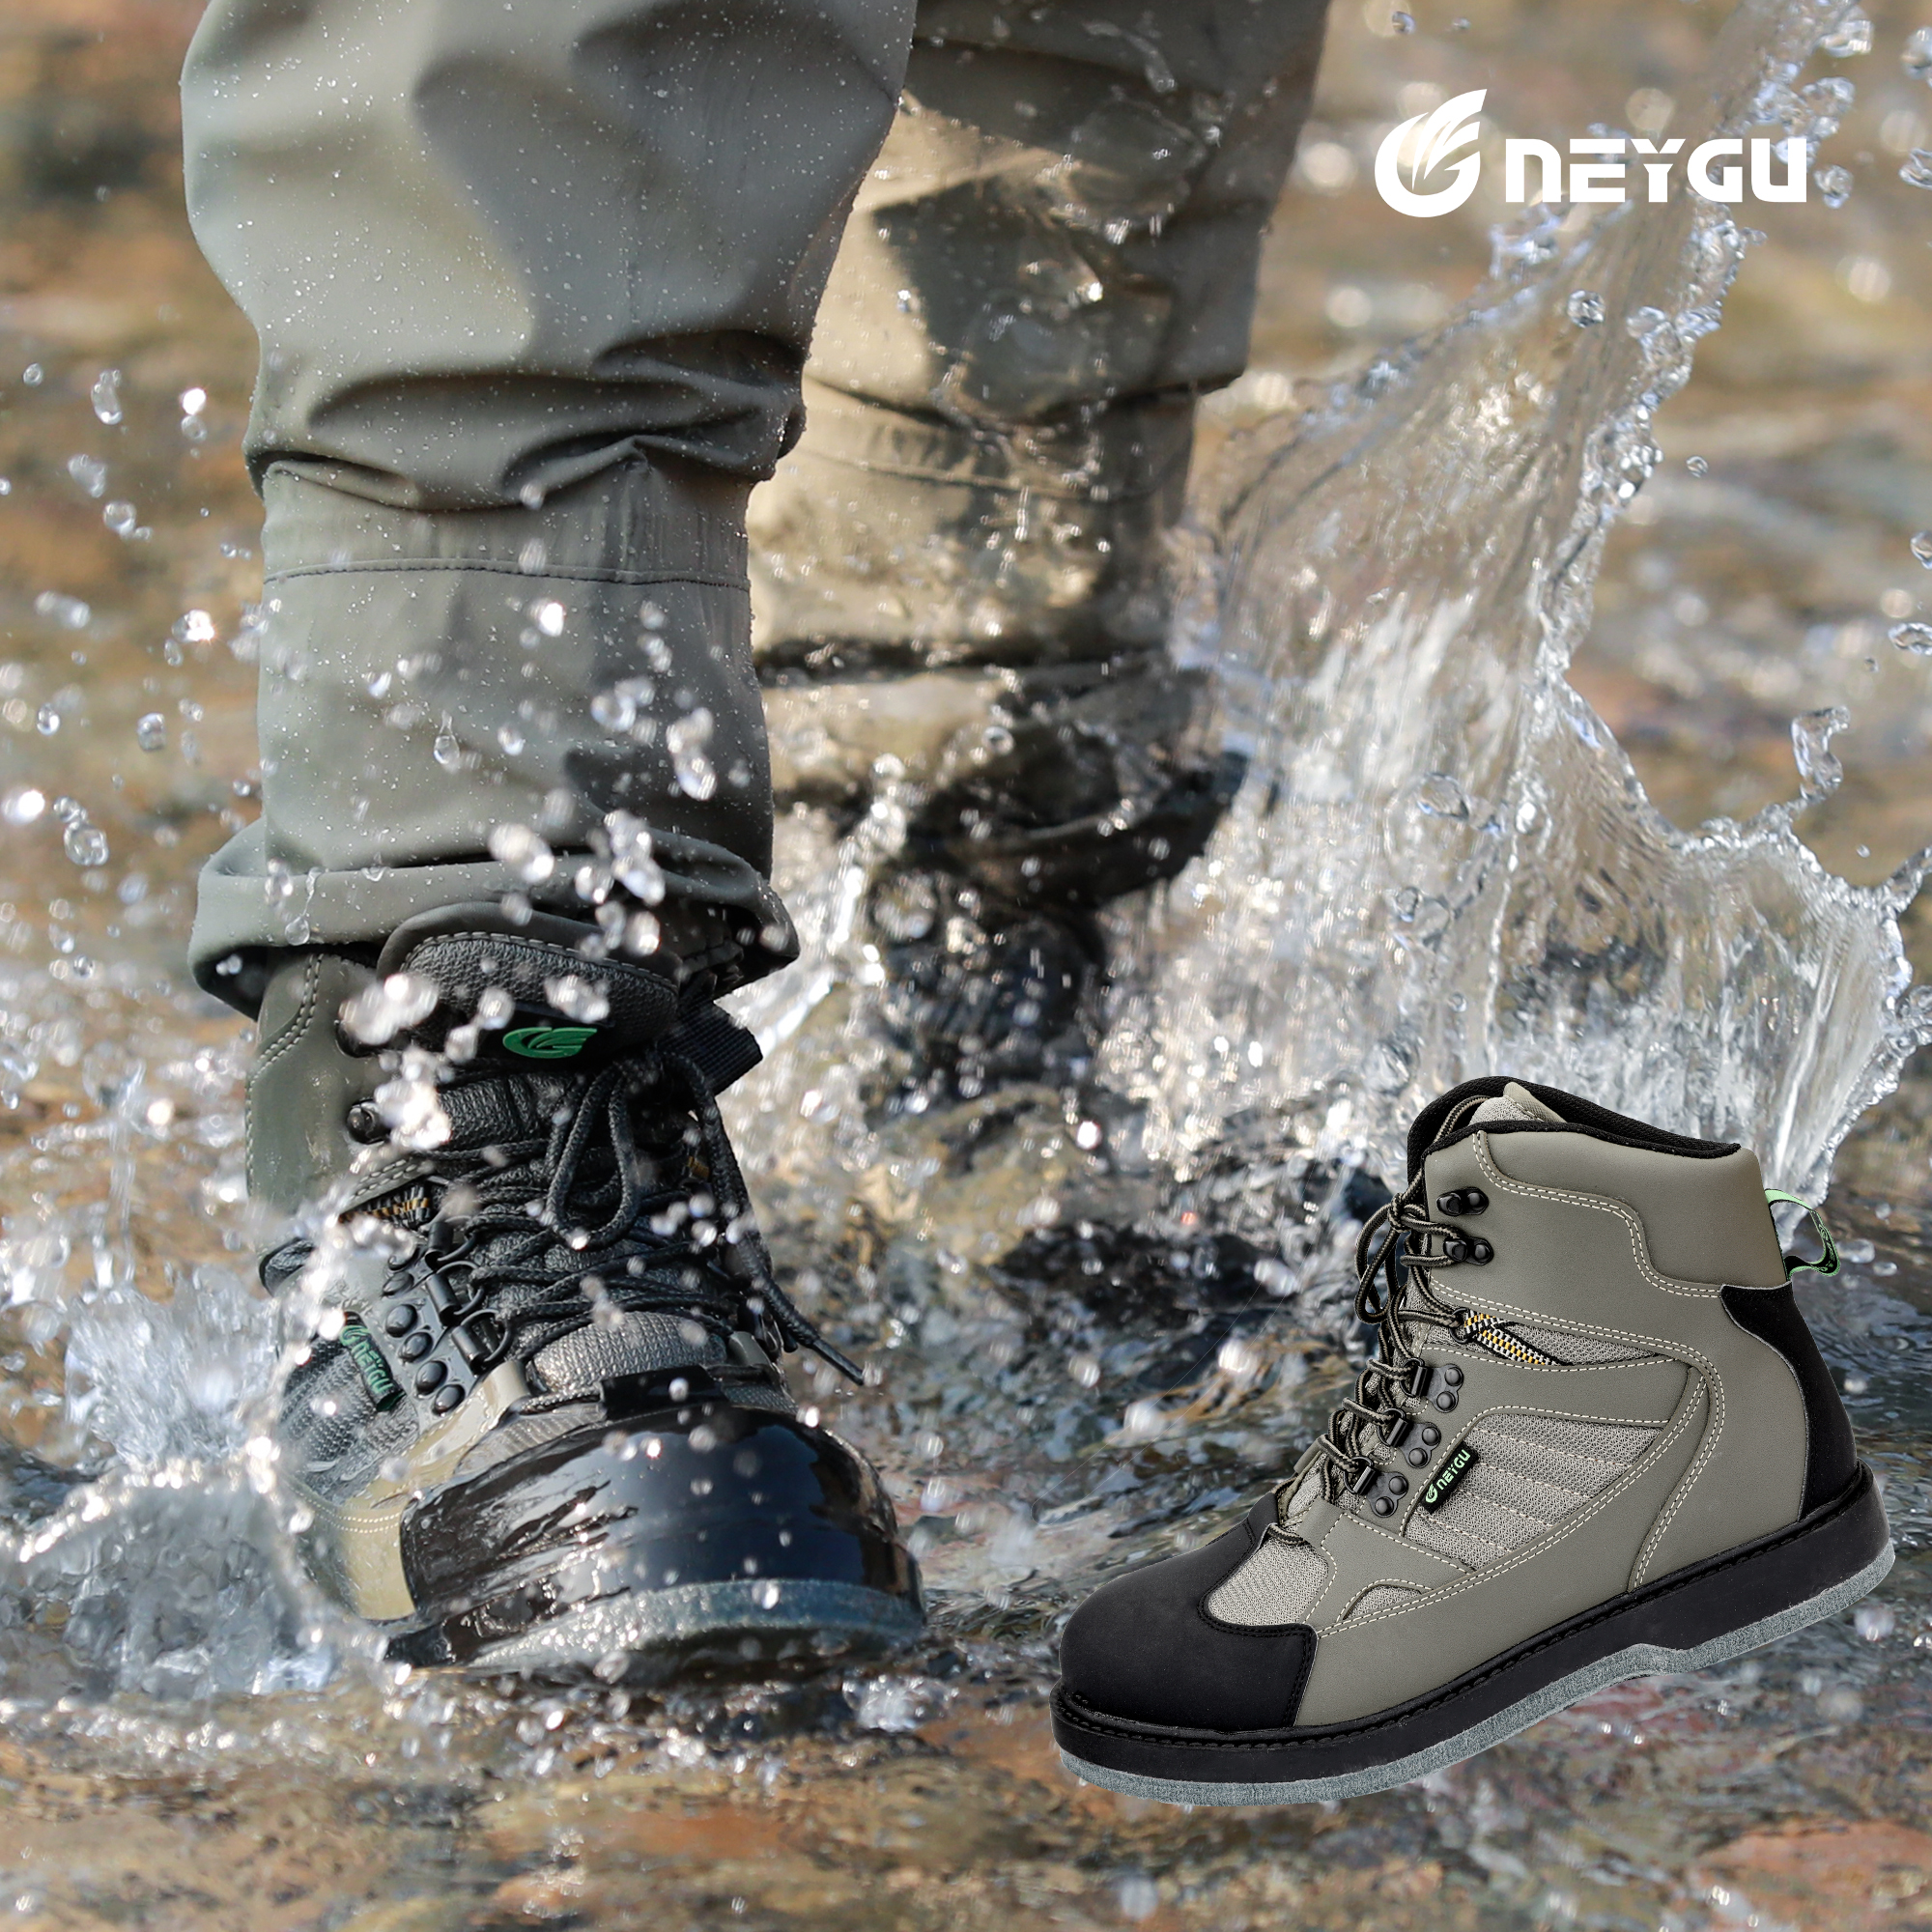 NEYGU 2019 NEW style outdoor wading boots for uni sex adult wear resisting fishing wader shoes